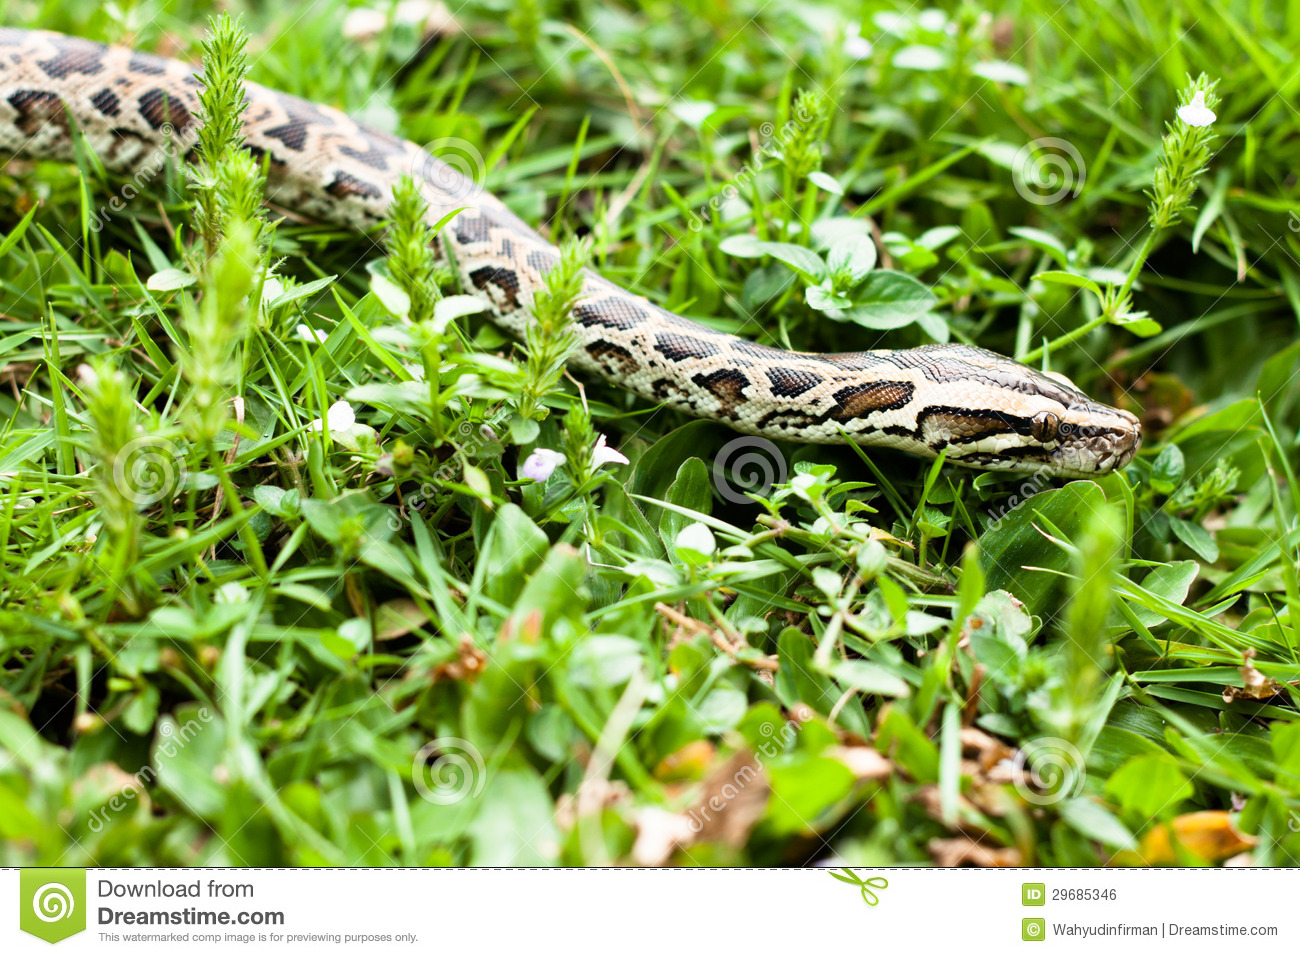 23 degrees in north Texas this morning-dangerous-animal-burmese-python-could-found-green-grasses-your-backyard-29685346.jpg